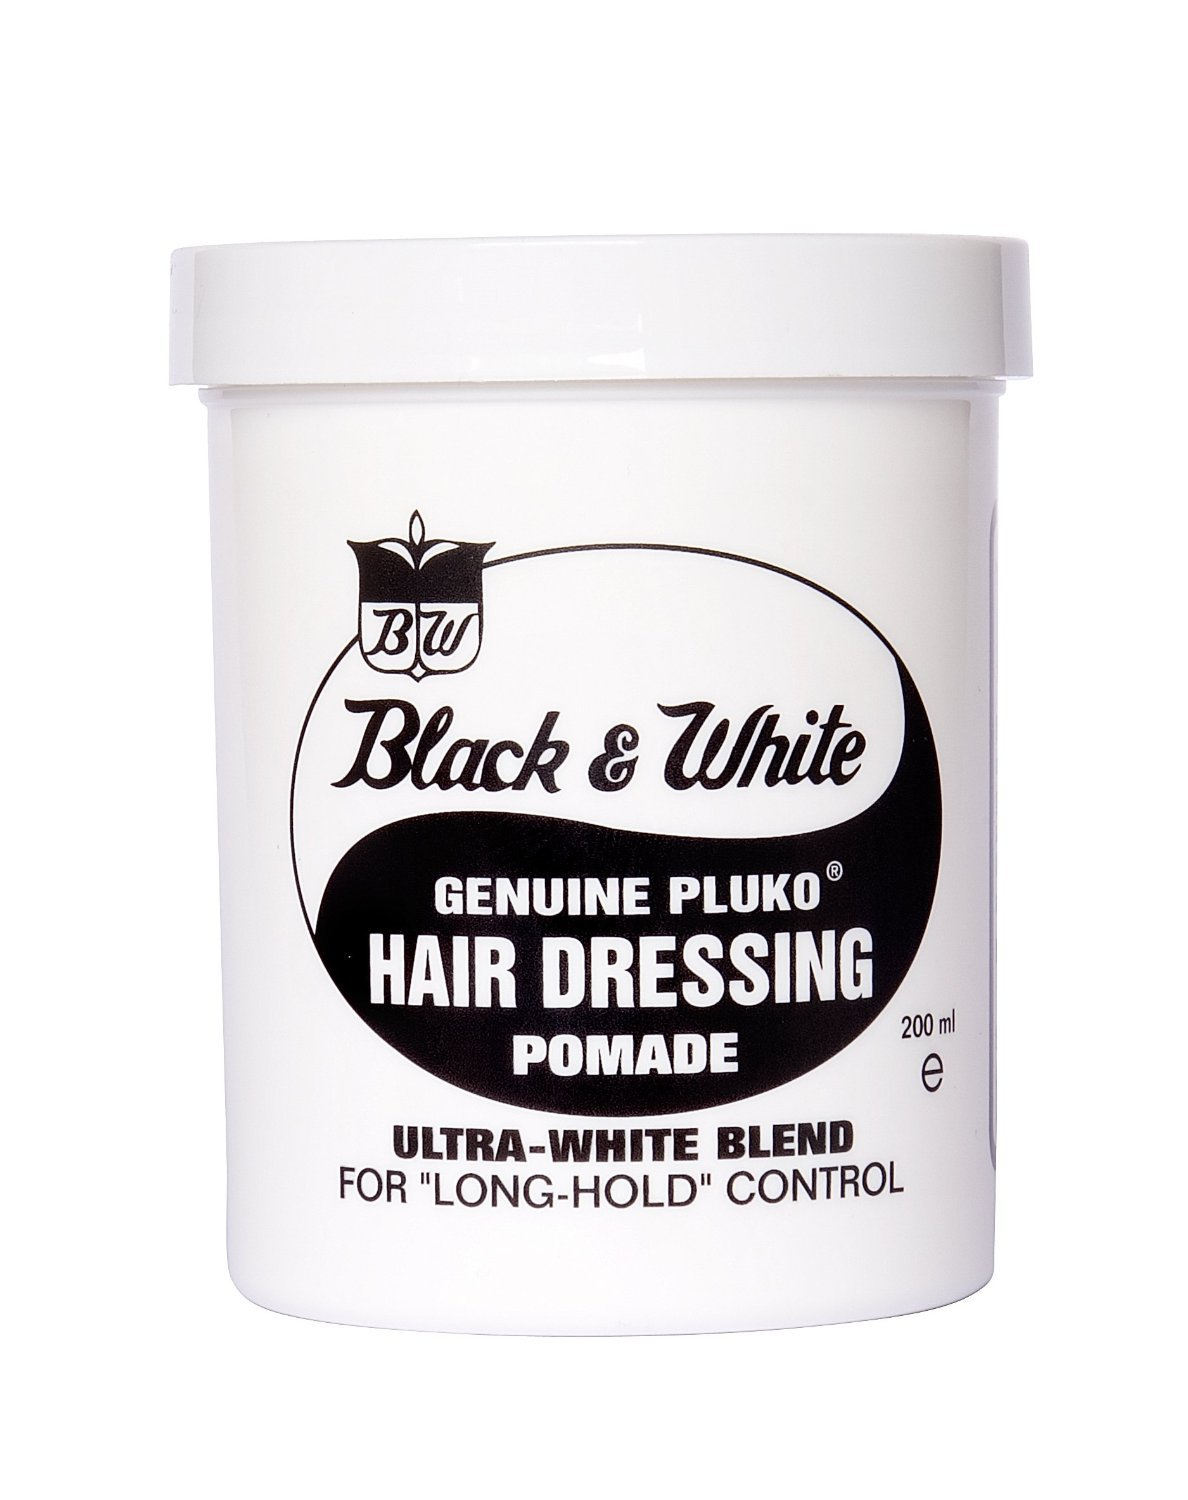 Black and White Pluko Hair Dressing Pomade 200ml Black & White BKWH200